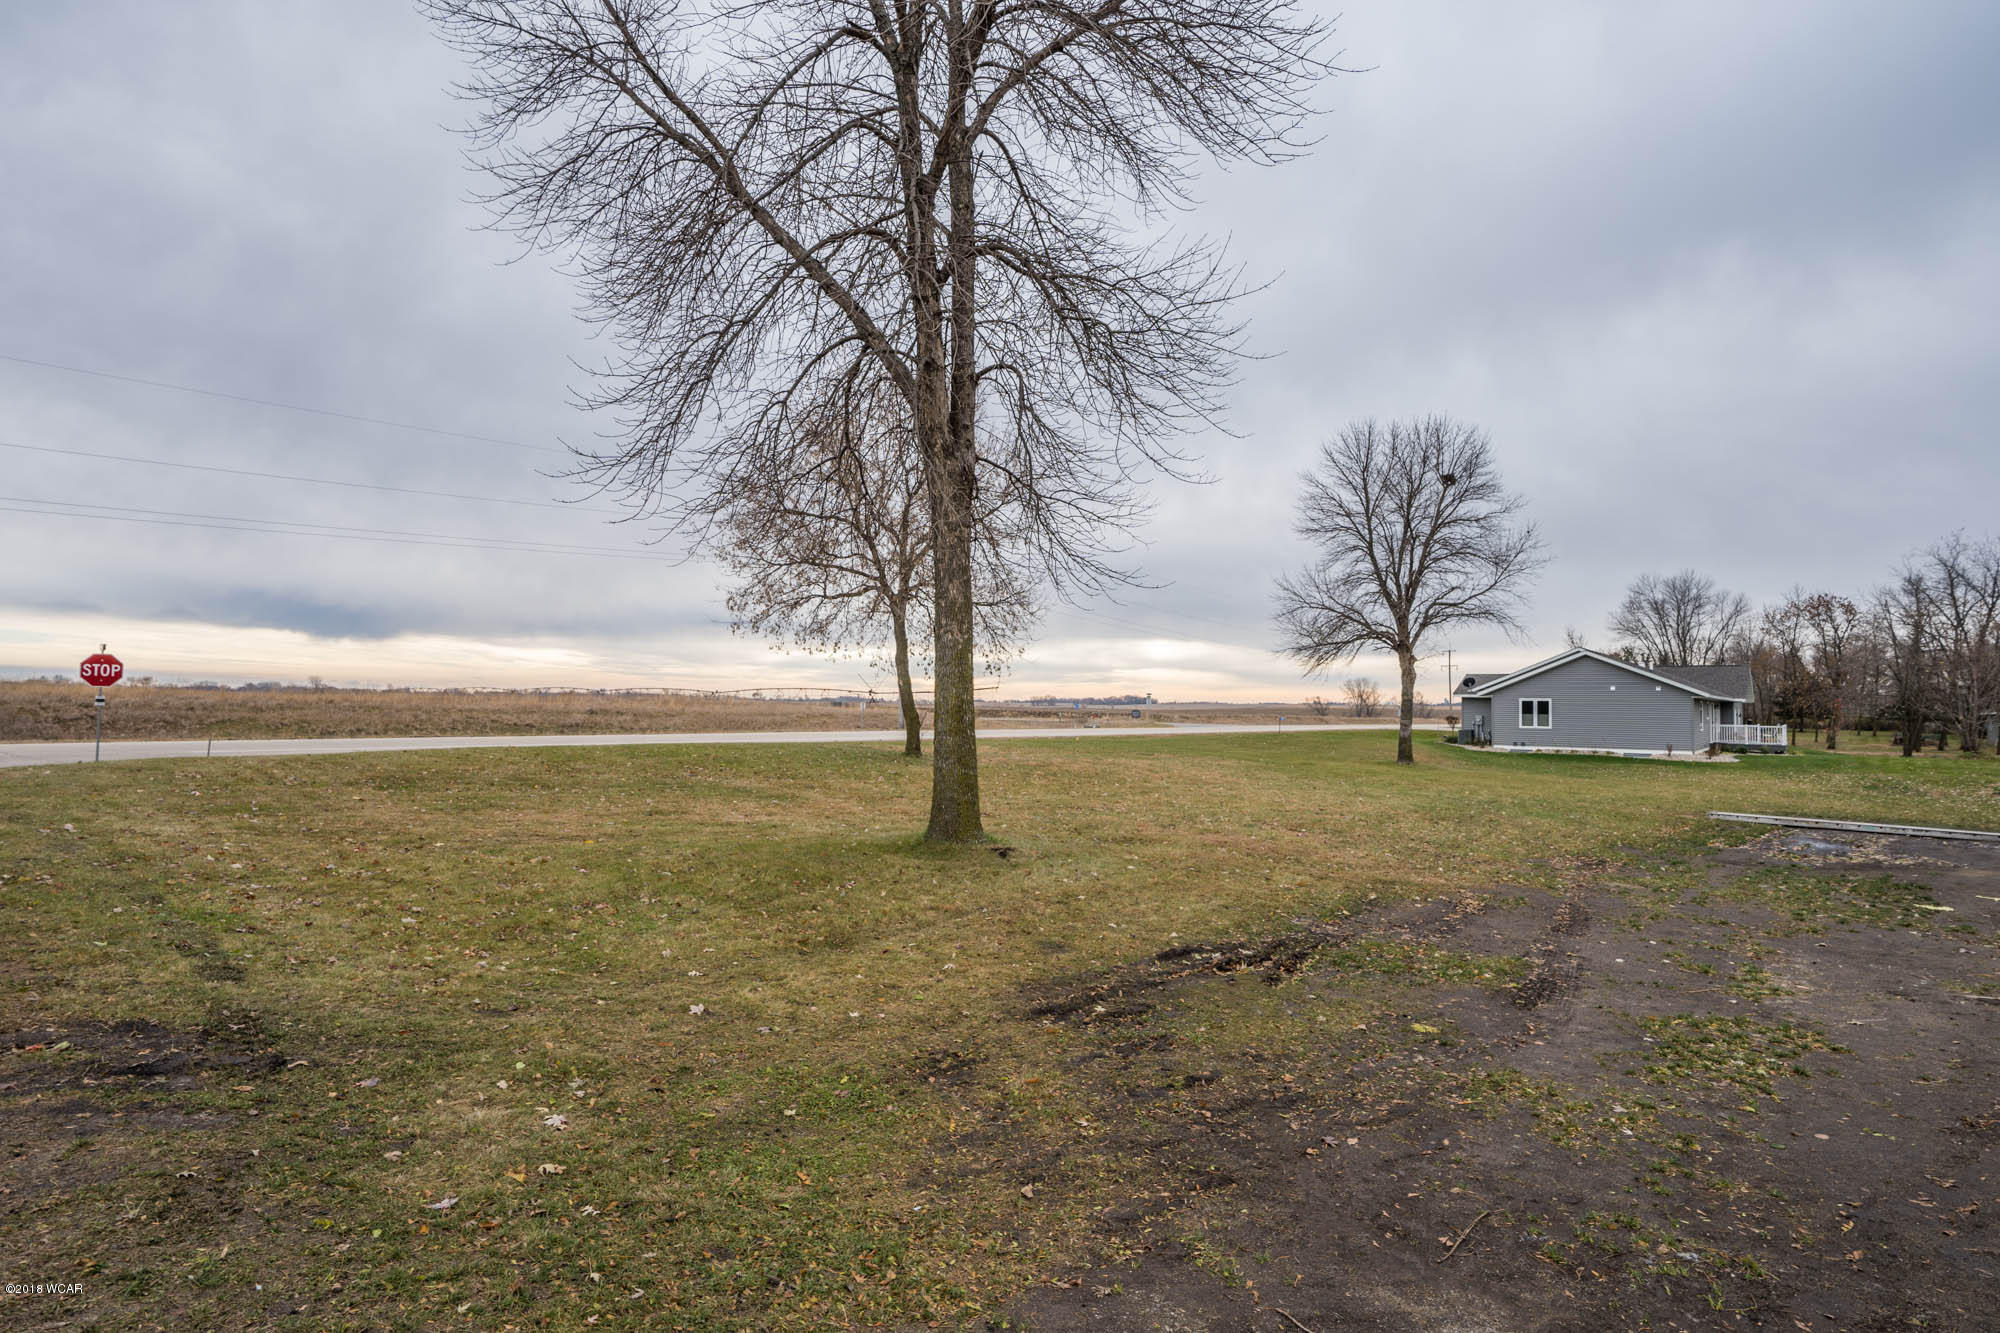 Xxx 139th Avenue,Spicer,Residential Land,139th Avenue,6032754